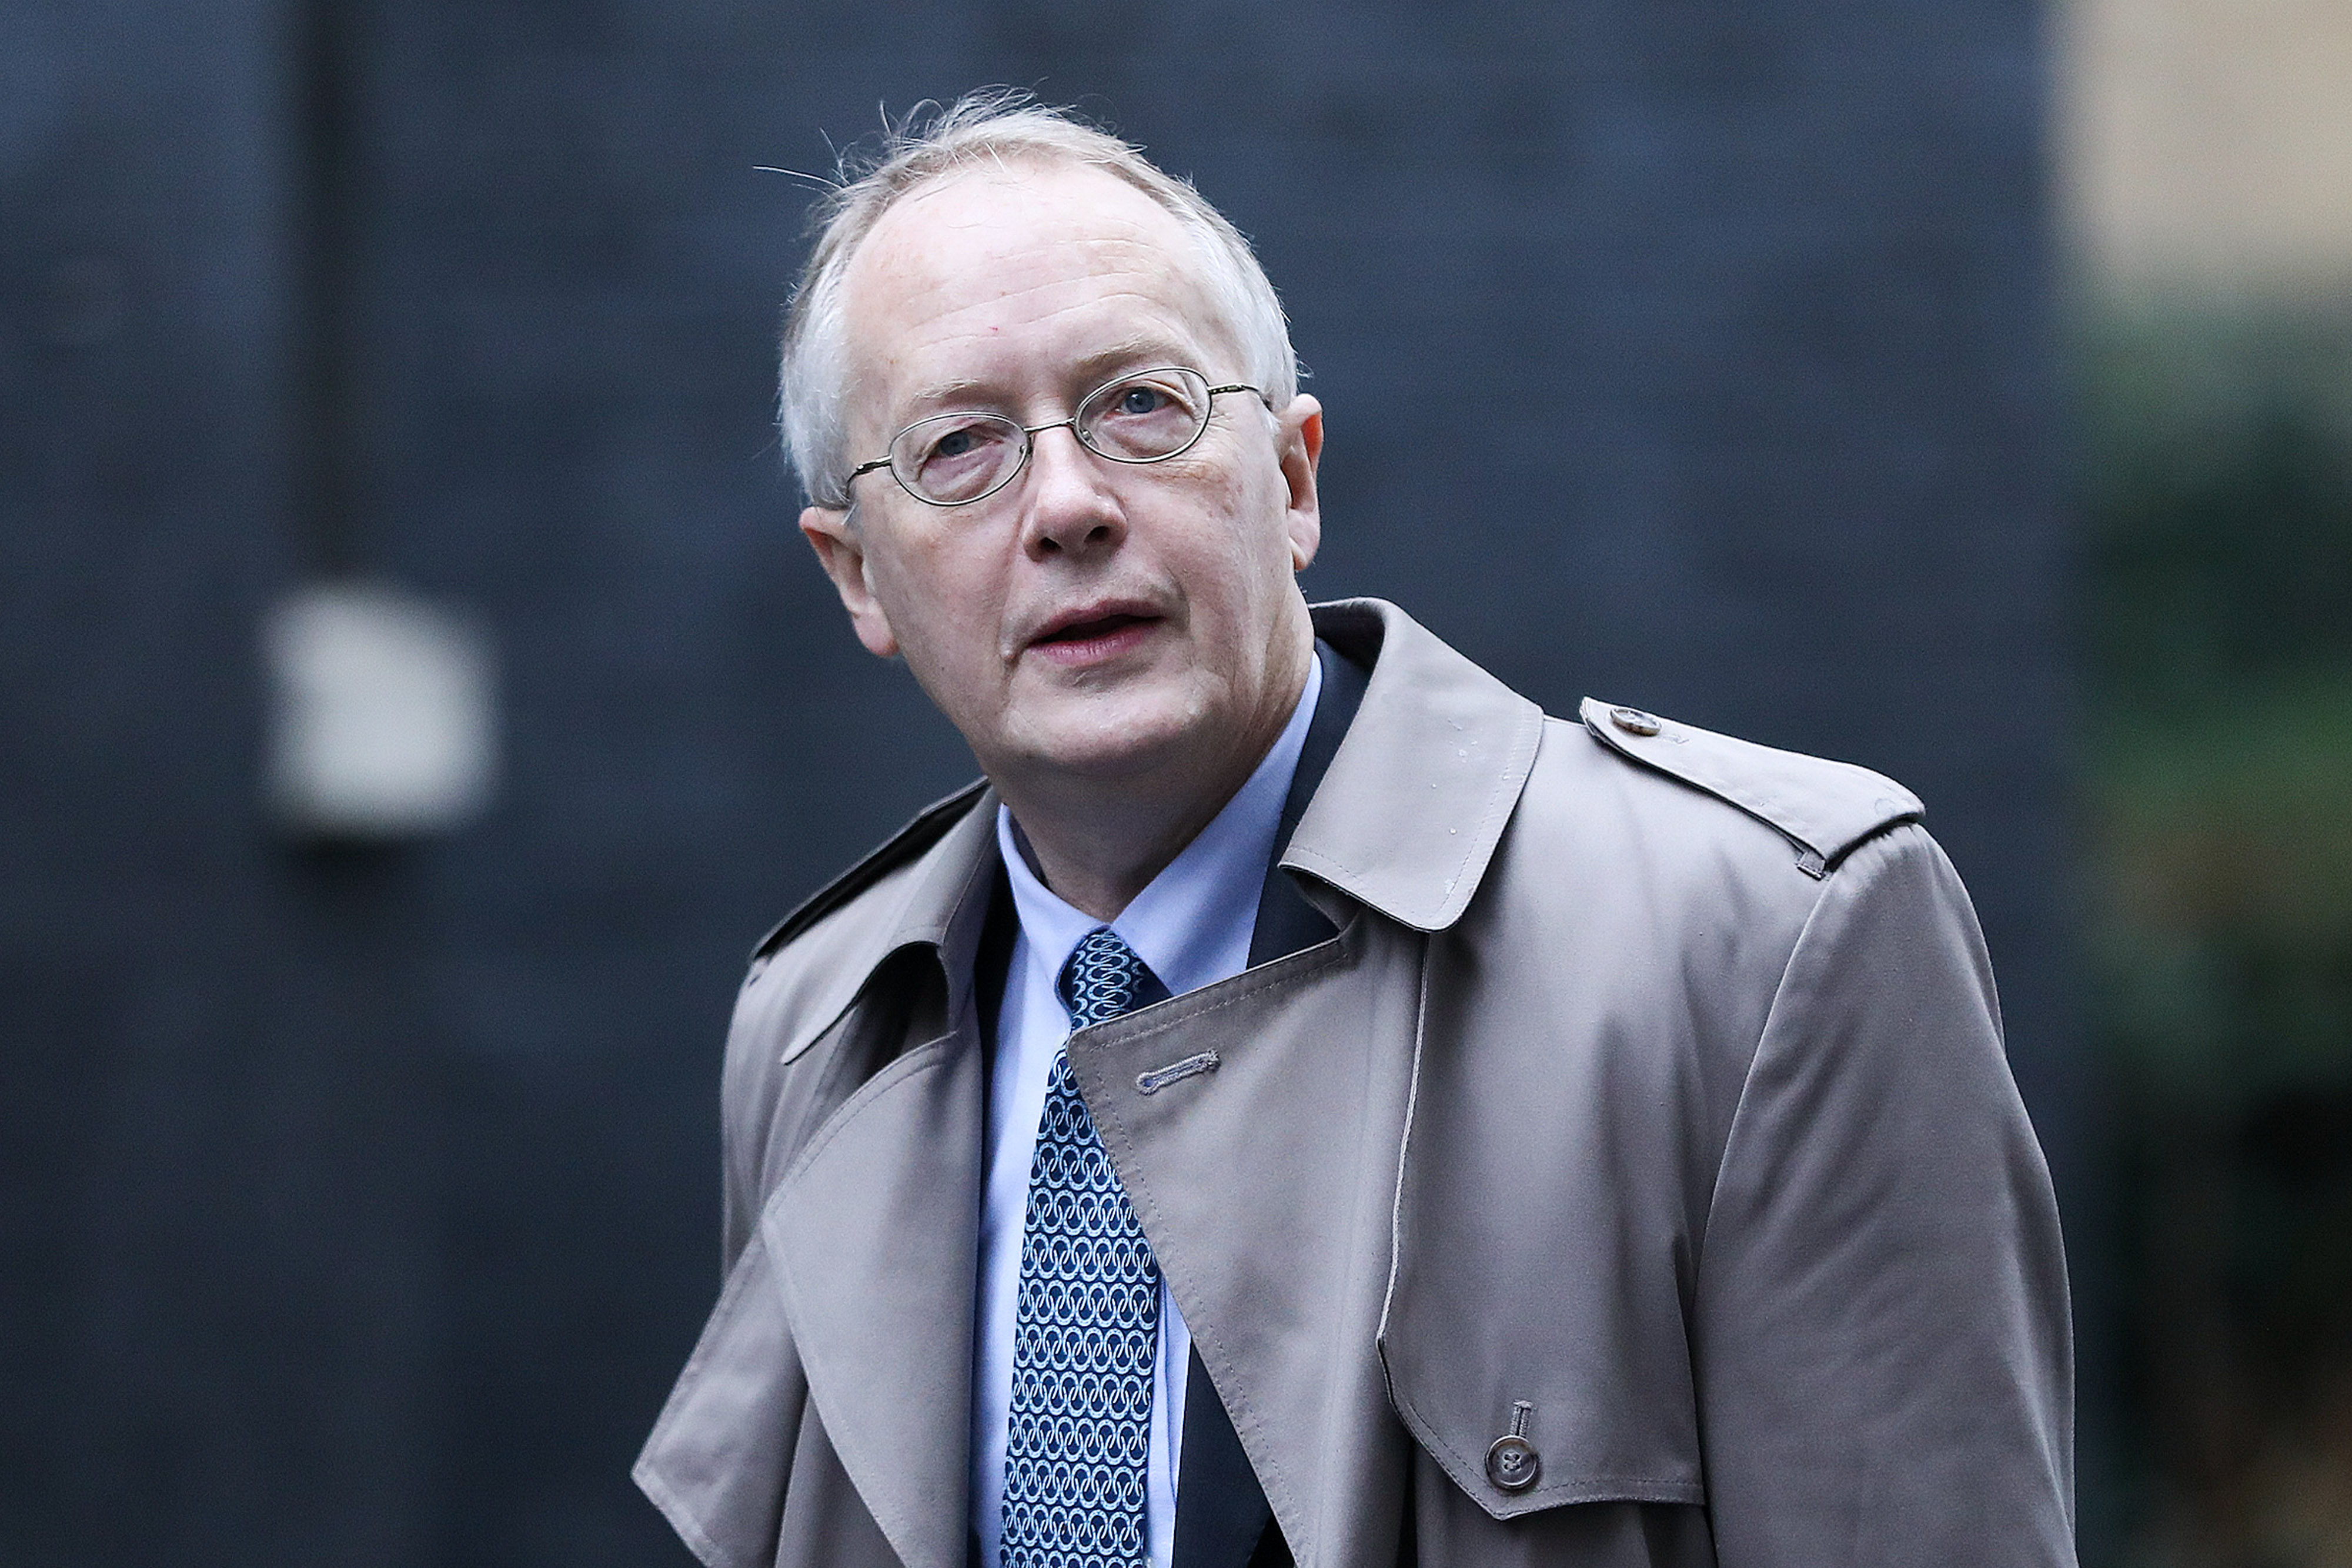 Myron Ebell, former head of U.S. President Donald Trump's EPA transition team, arrives at 10 Downing Street in London, U.K., on Jan. 31.